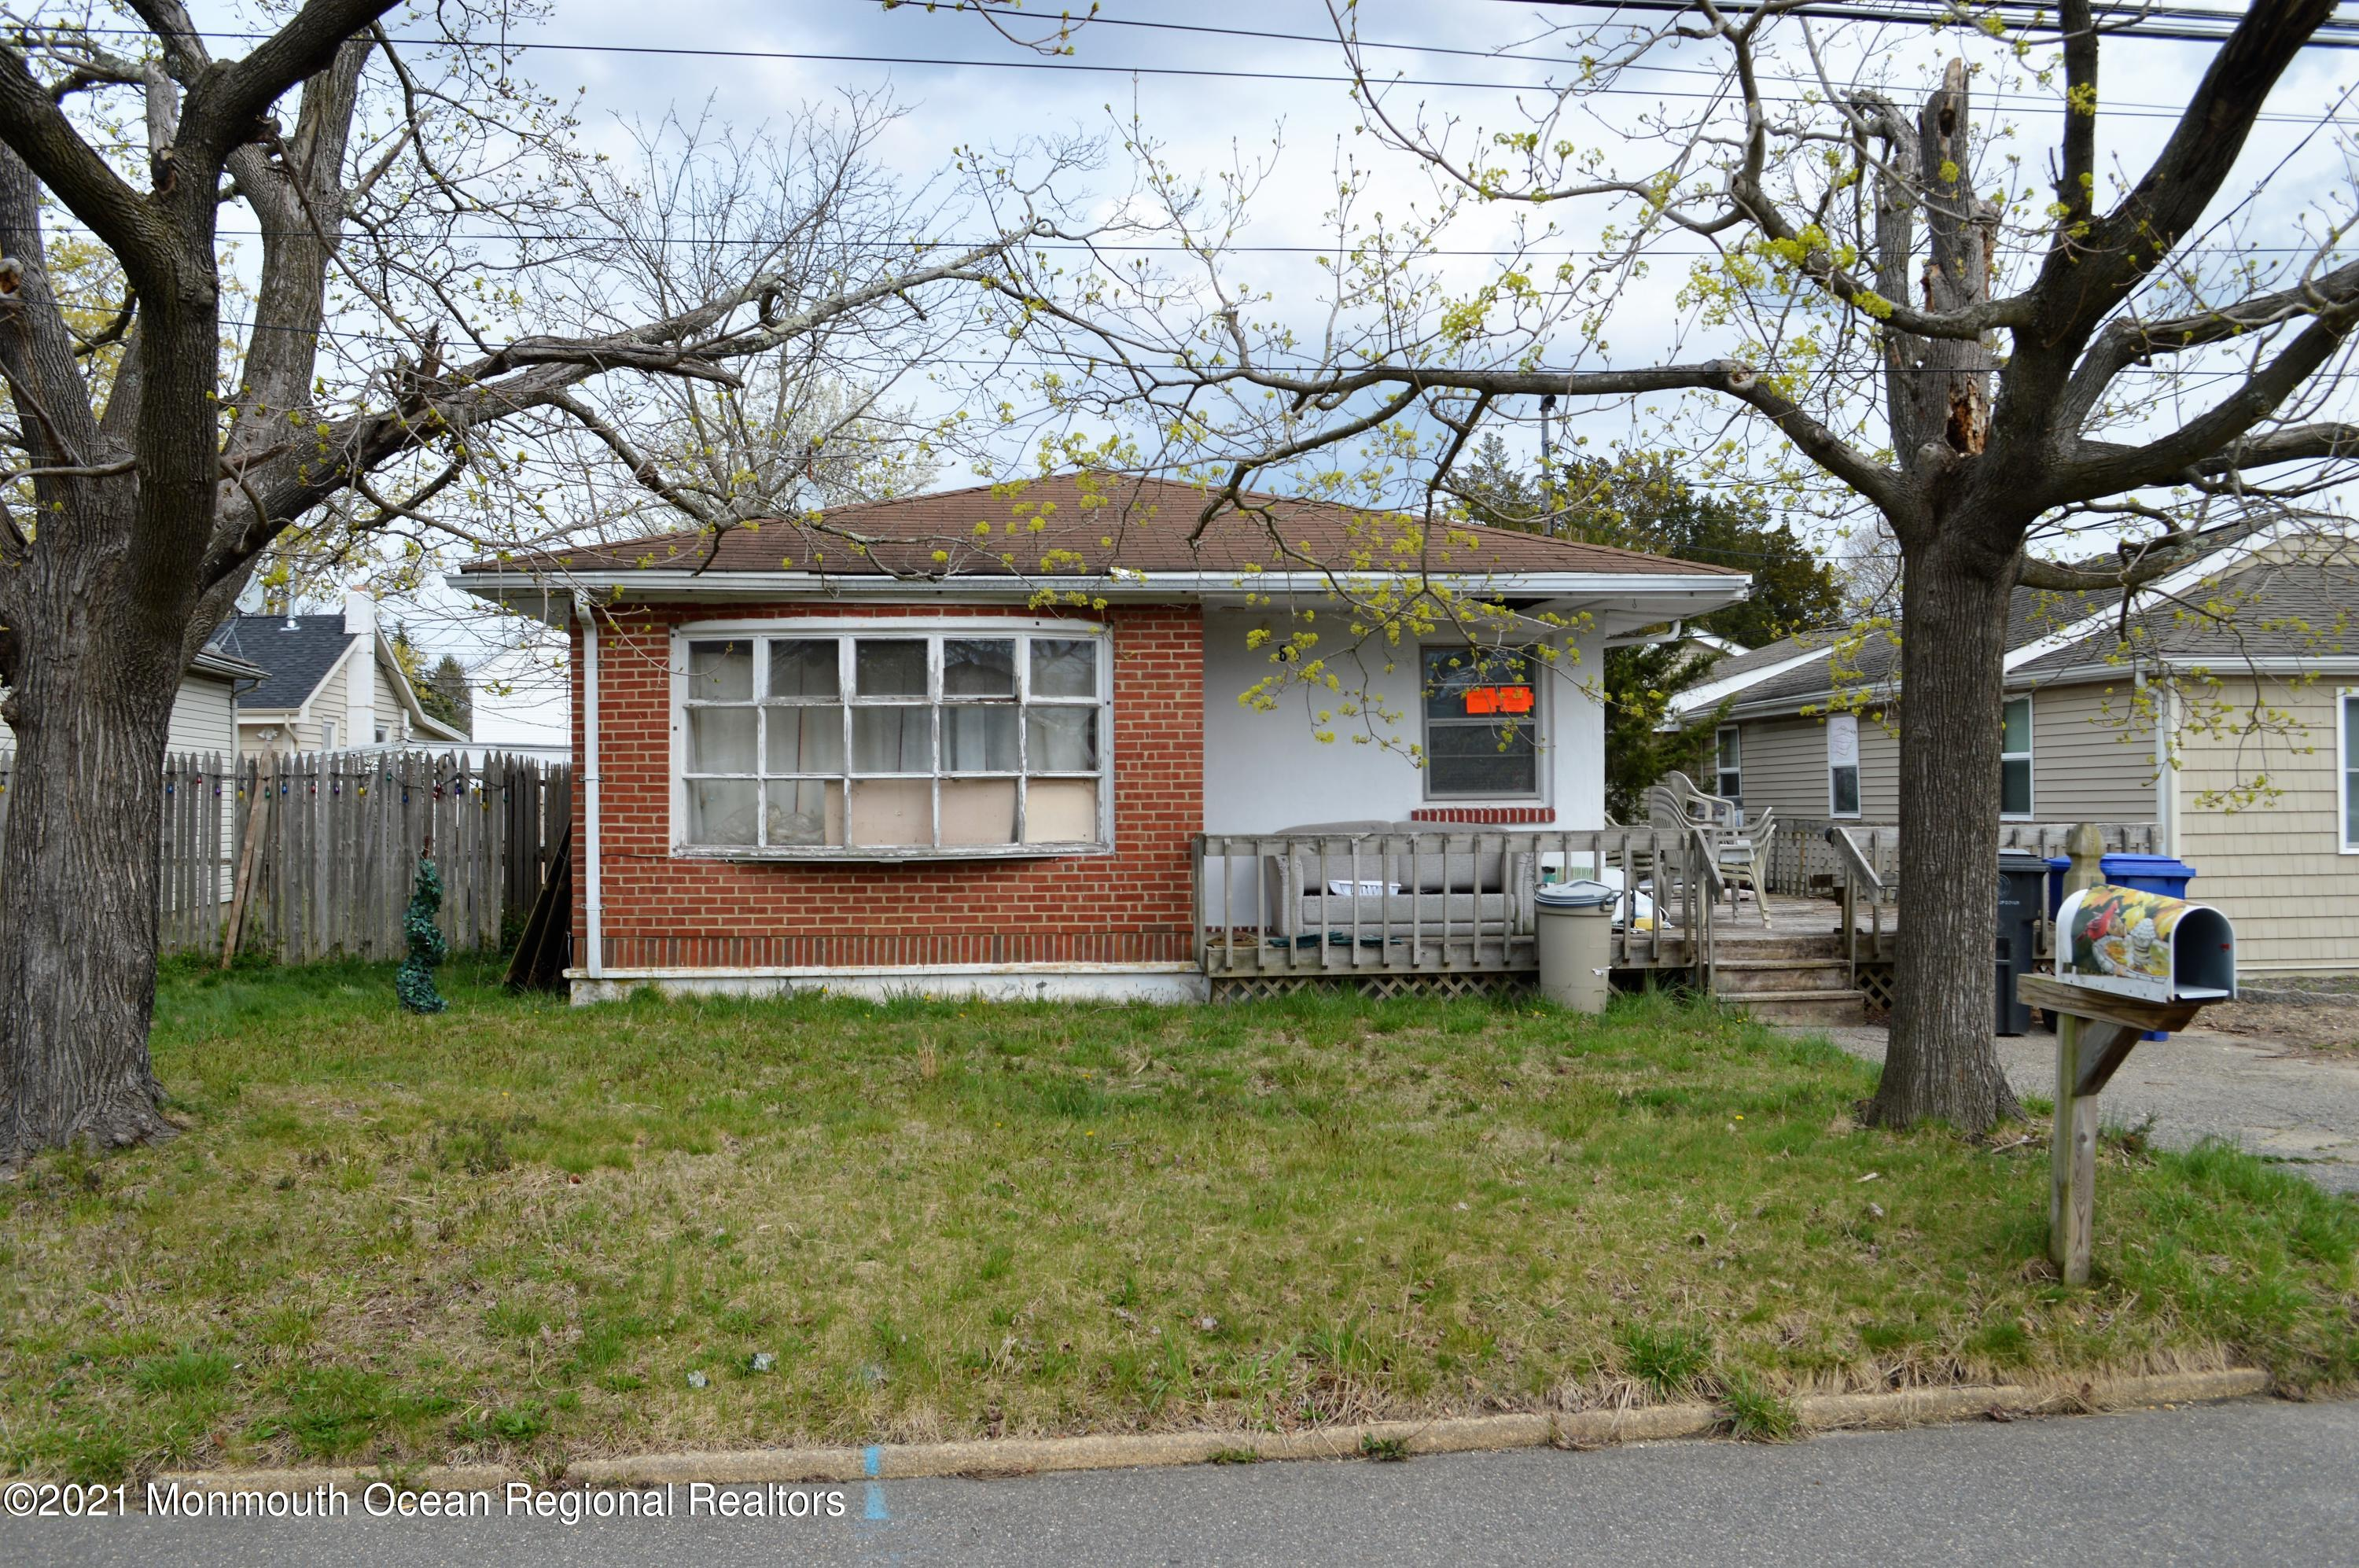 88 Gladney Avenue, Toms River, New Jersey 08753, 2 Bedrooms Bedrooms, ,1 BathroomBathrooms,Single Family,For Sale,88 Gladney Avenue,1,22111422